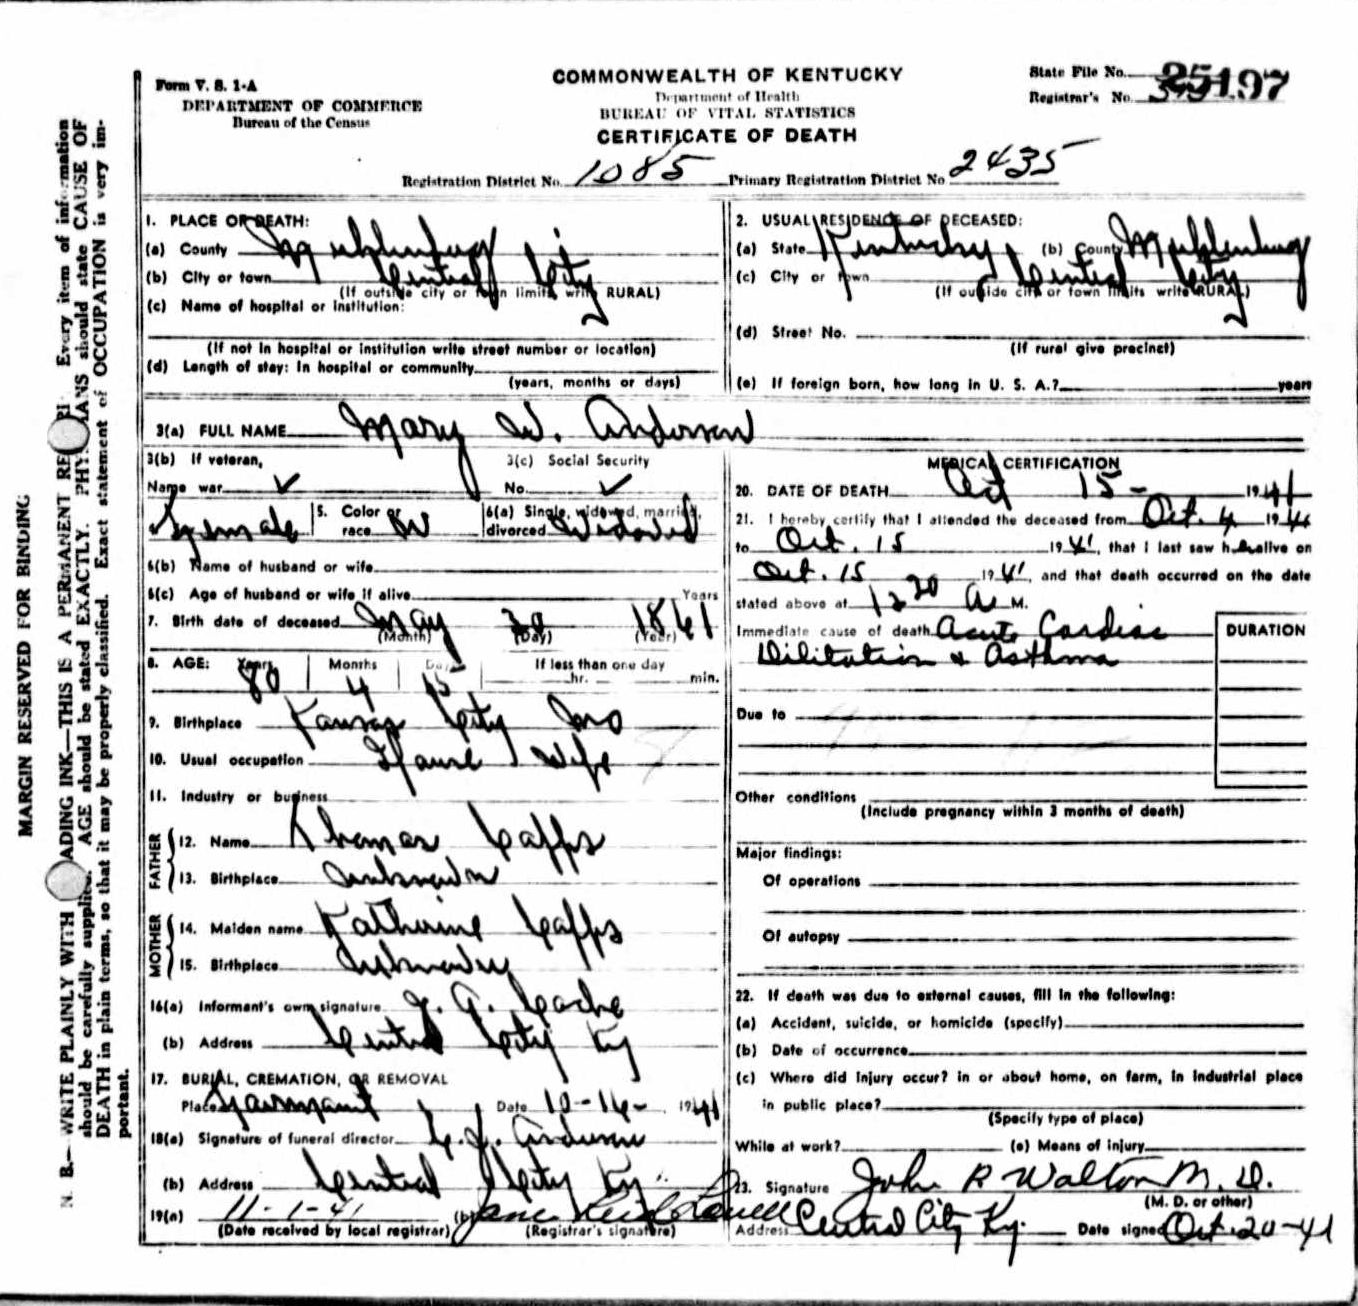 Death certificates a kentucky death certificate 25197 mary w anderson 1861 1941 thomas capps katherine capps ja coche central city kansas city muhlenberg xflitez Image collections